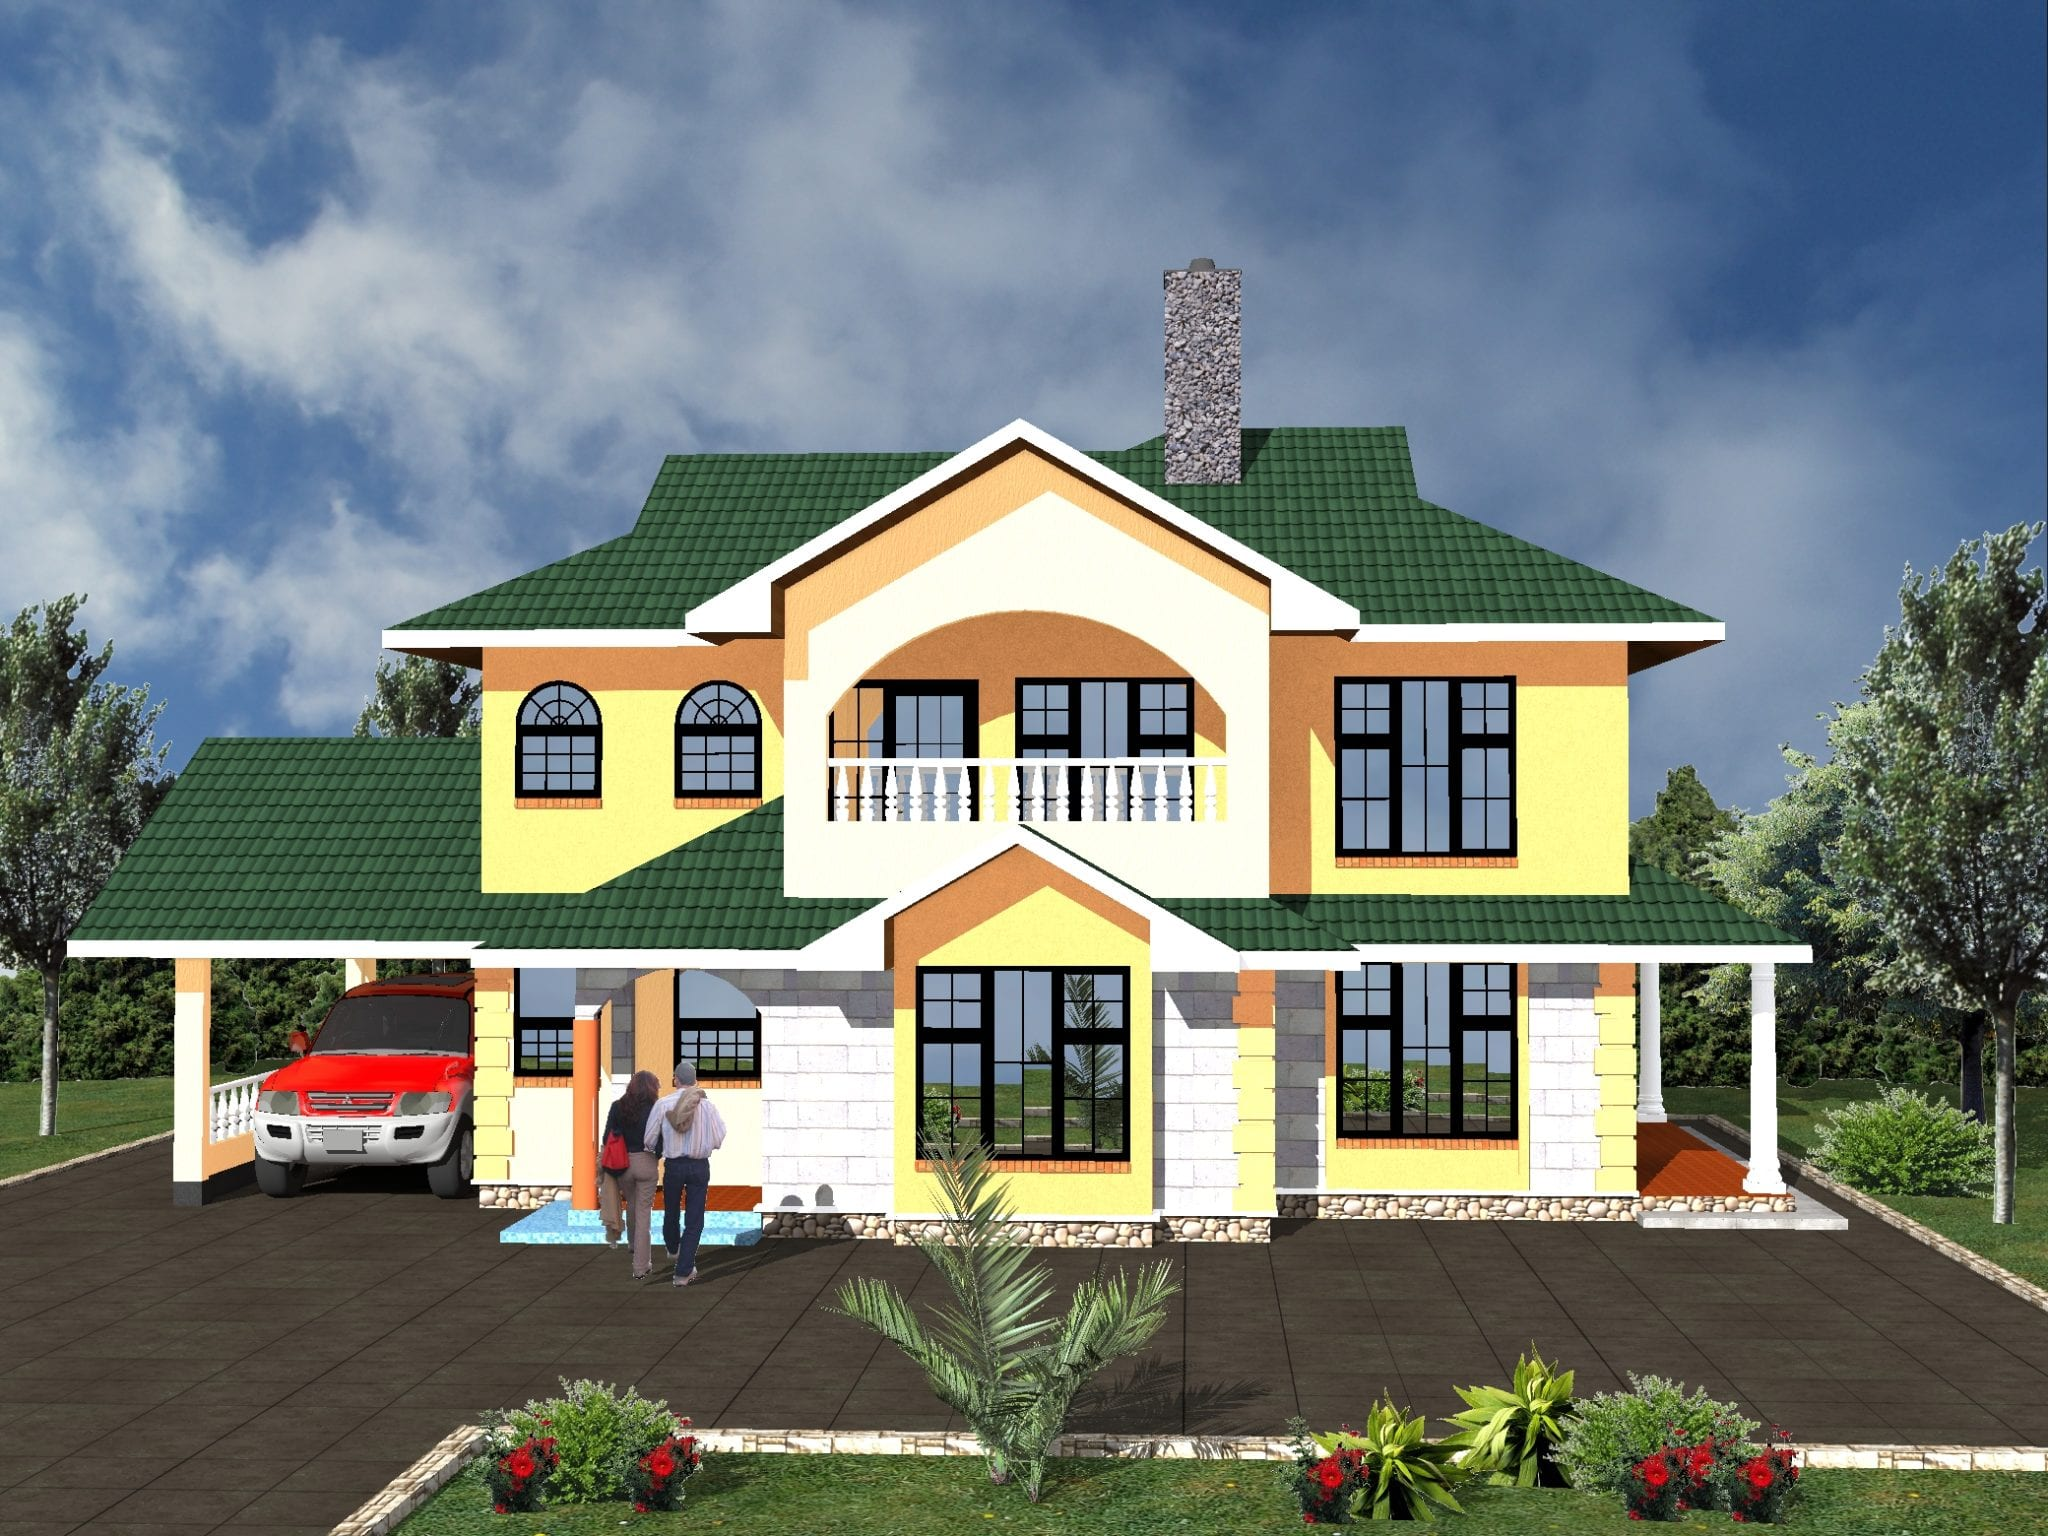 4 Bedroom House Plans One Story Designs Hpd Consult